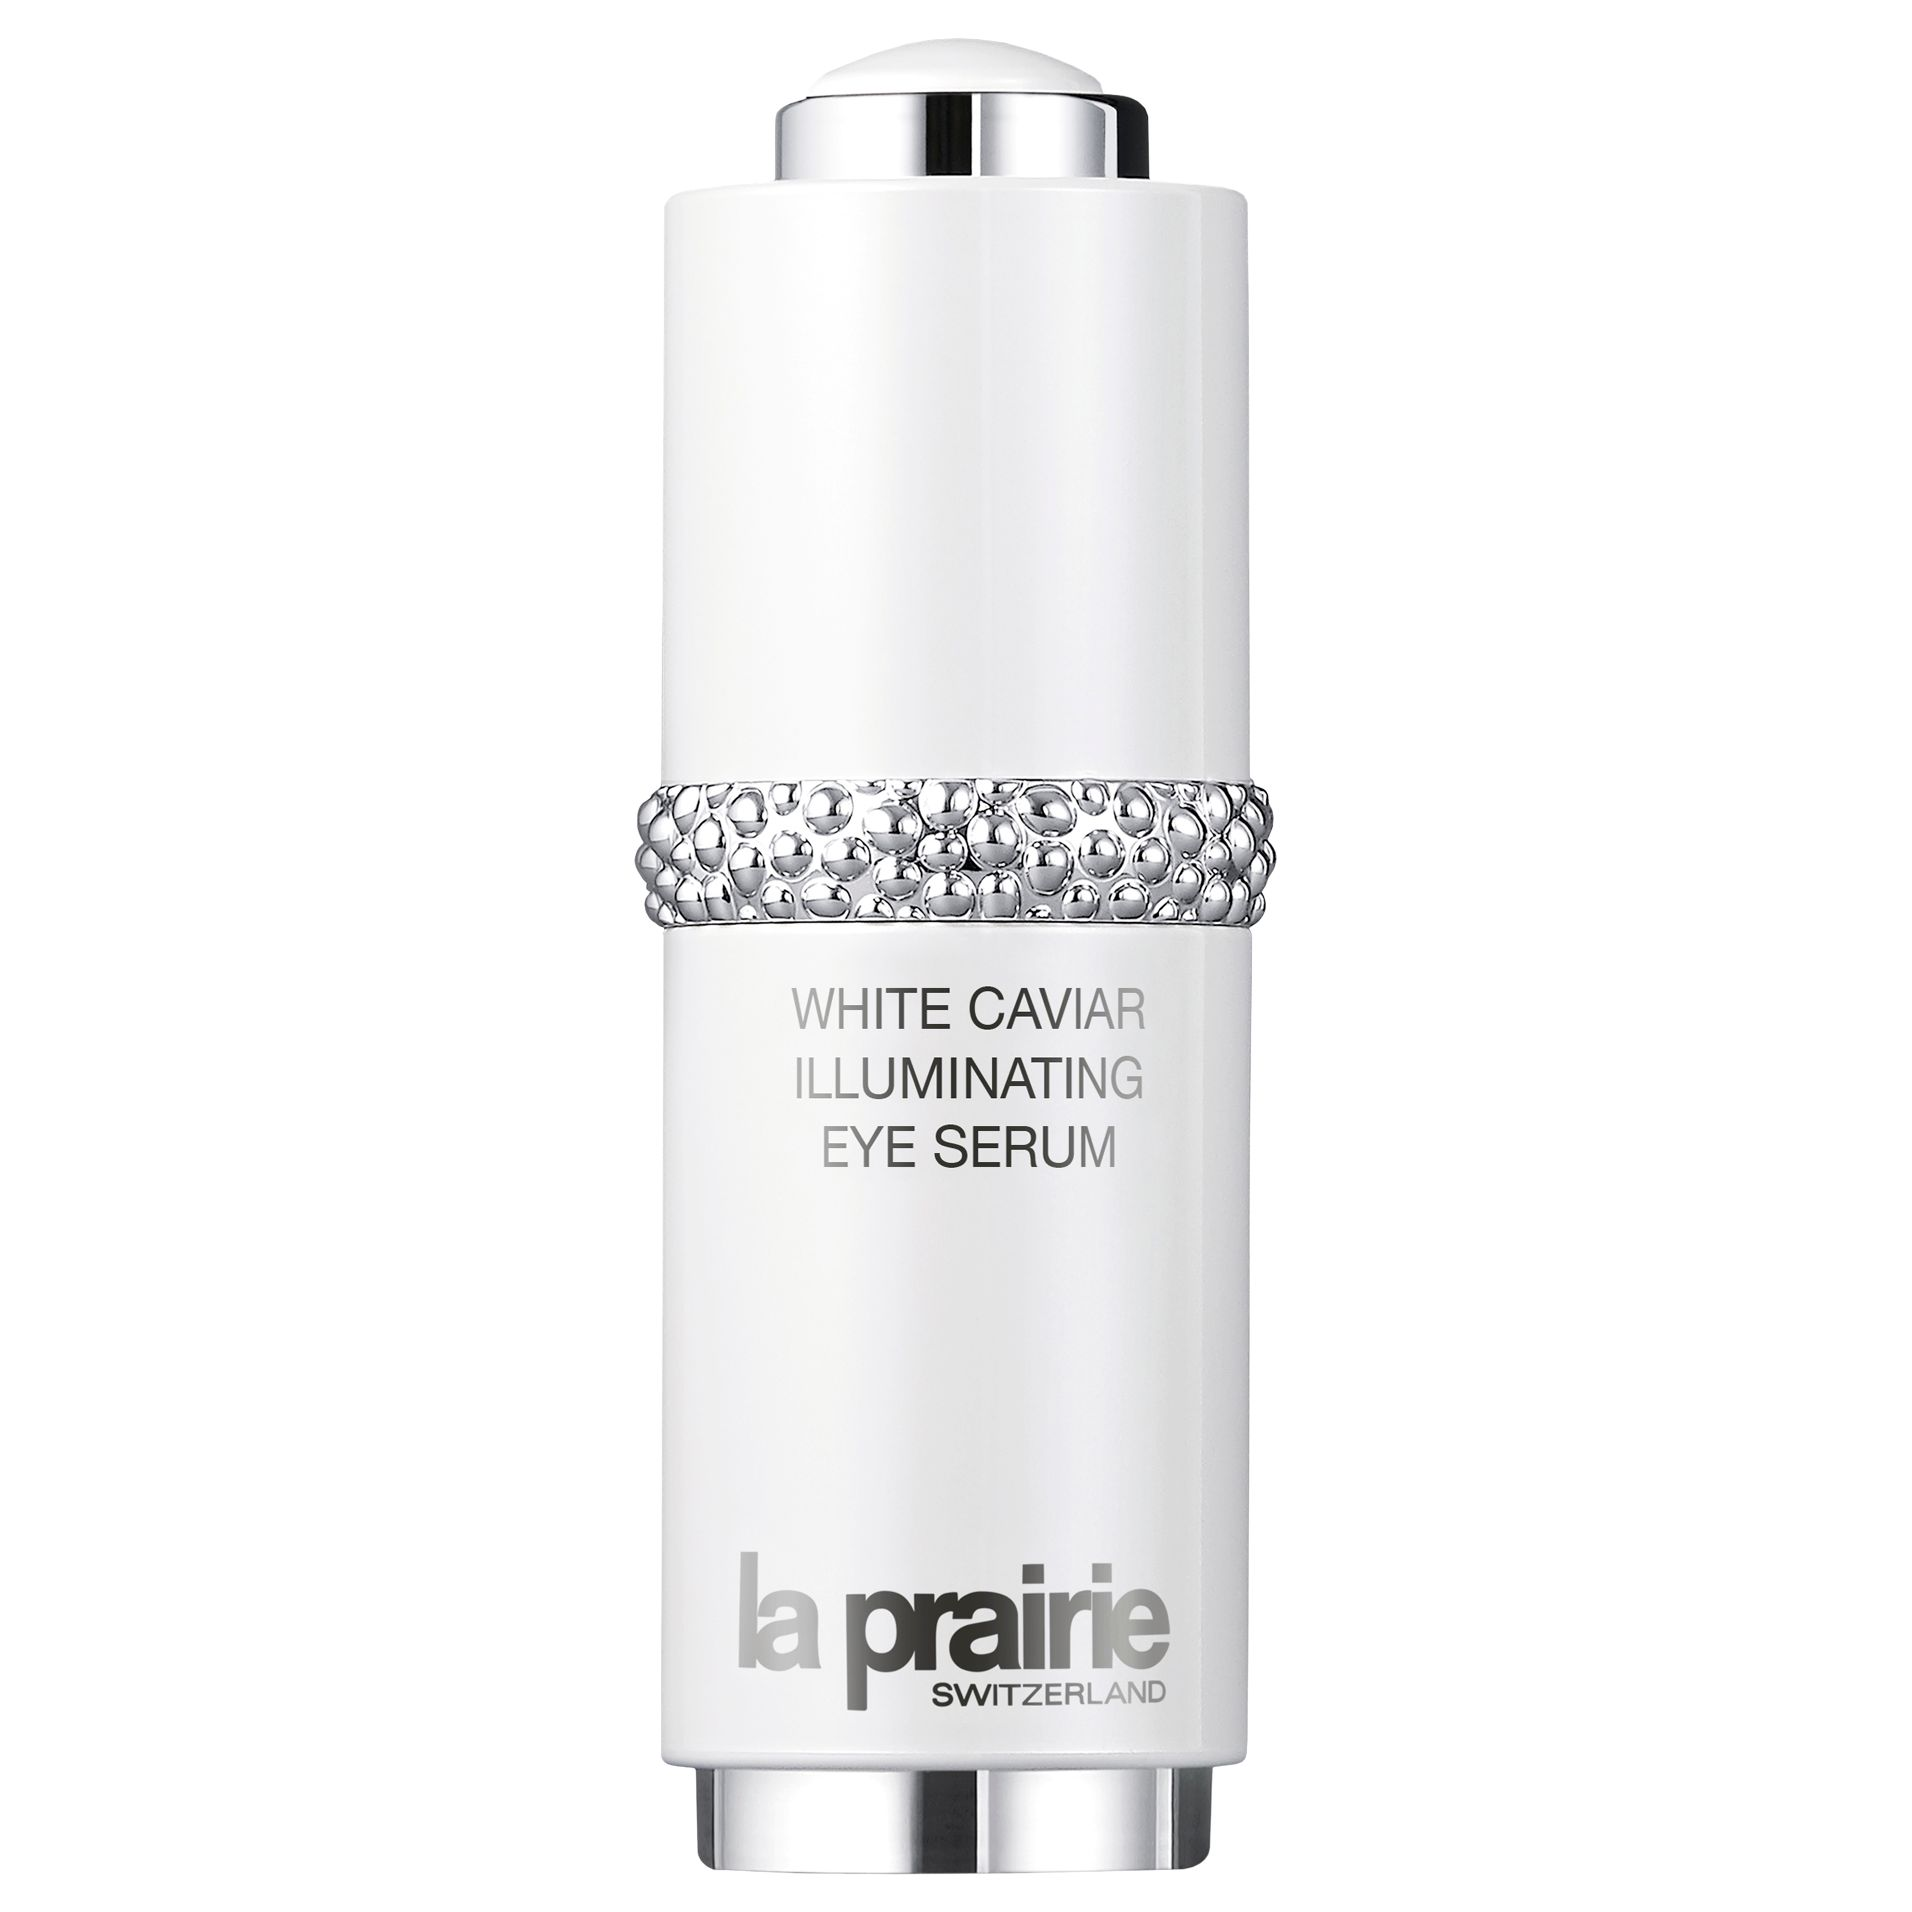 La Prairie La Prairie White Caviar Illuminating Eye Serum, 15ml